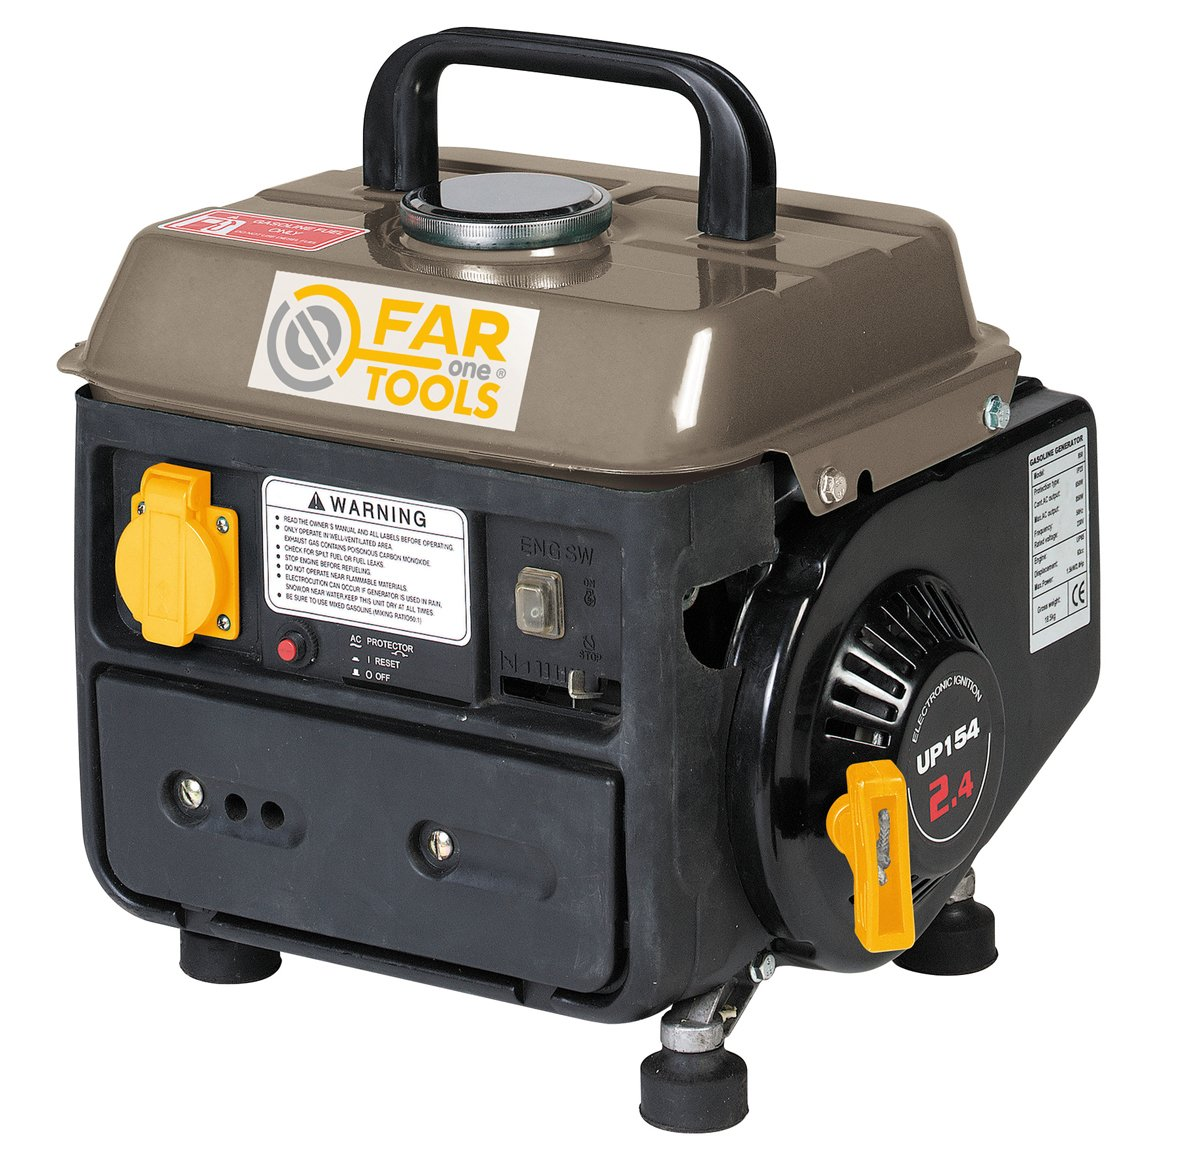 Fartools One GGB 950 Generator, 700 W, 220 V, 50 Hz